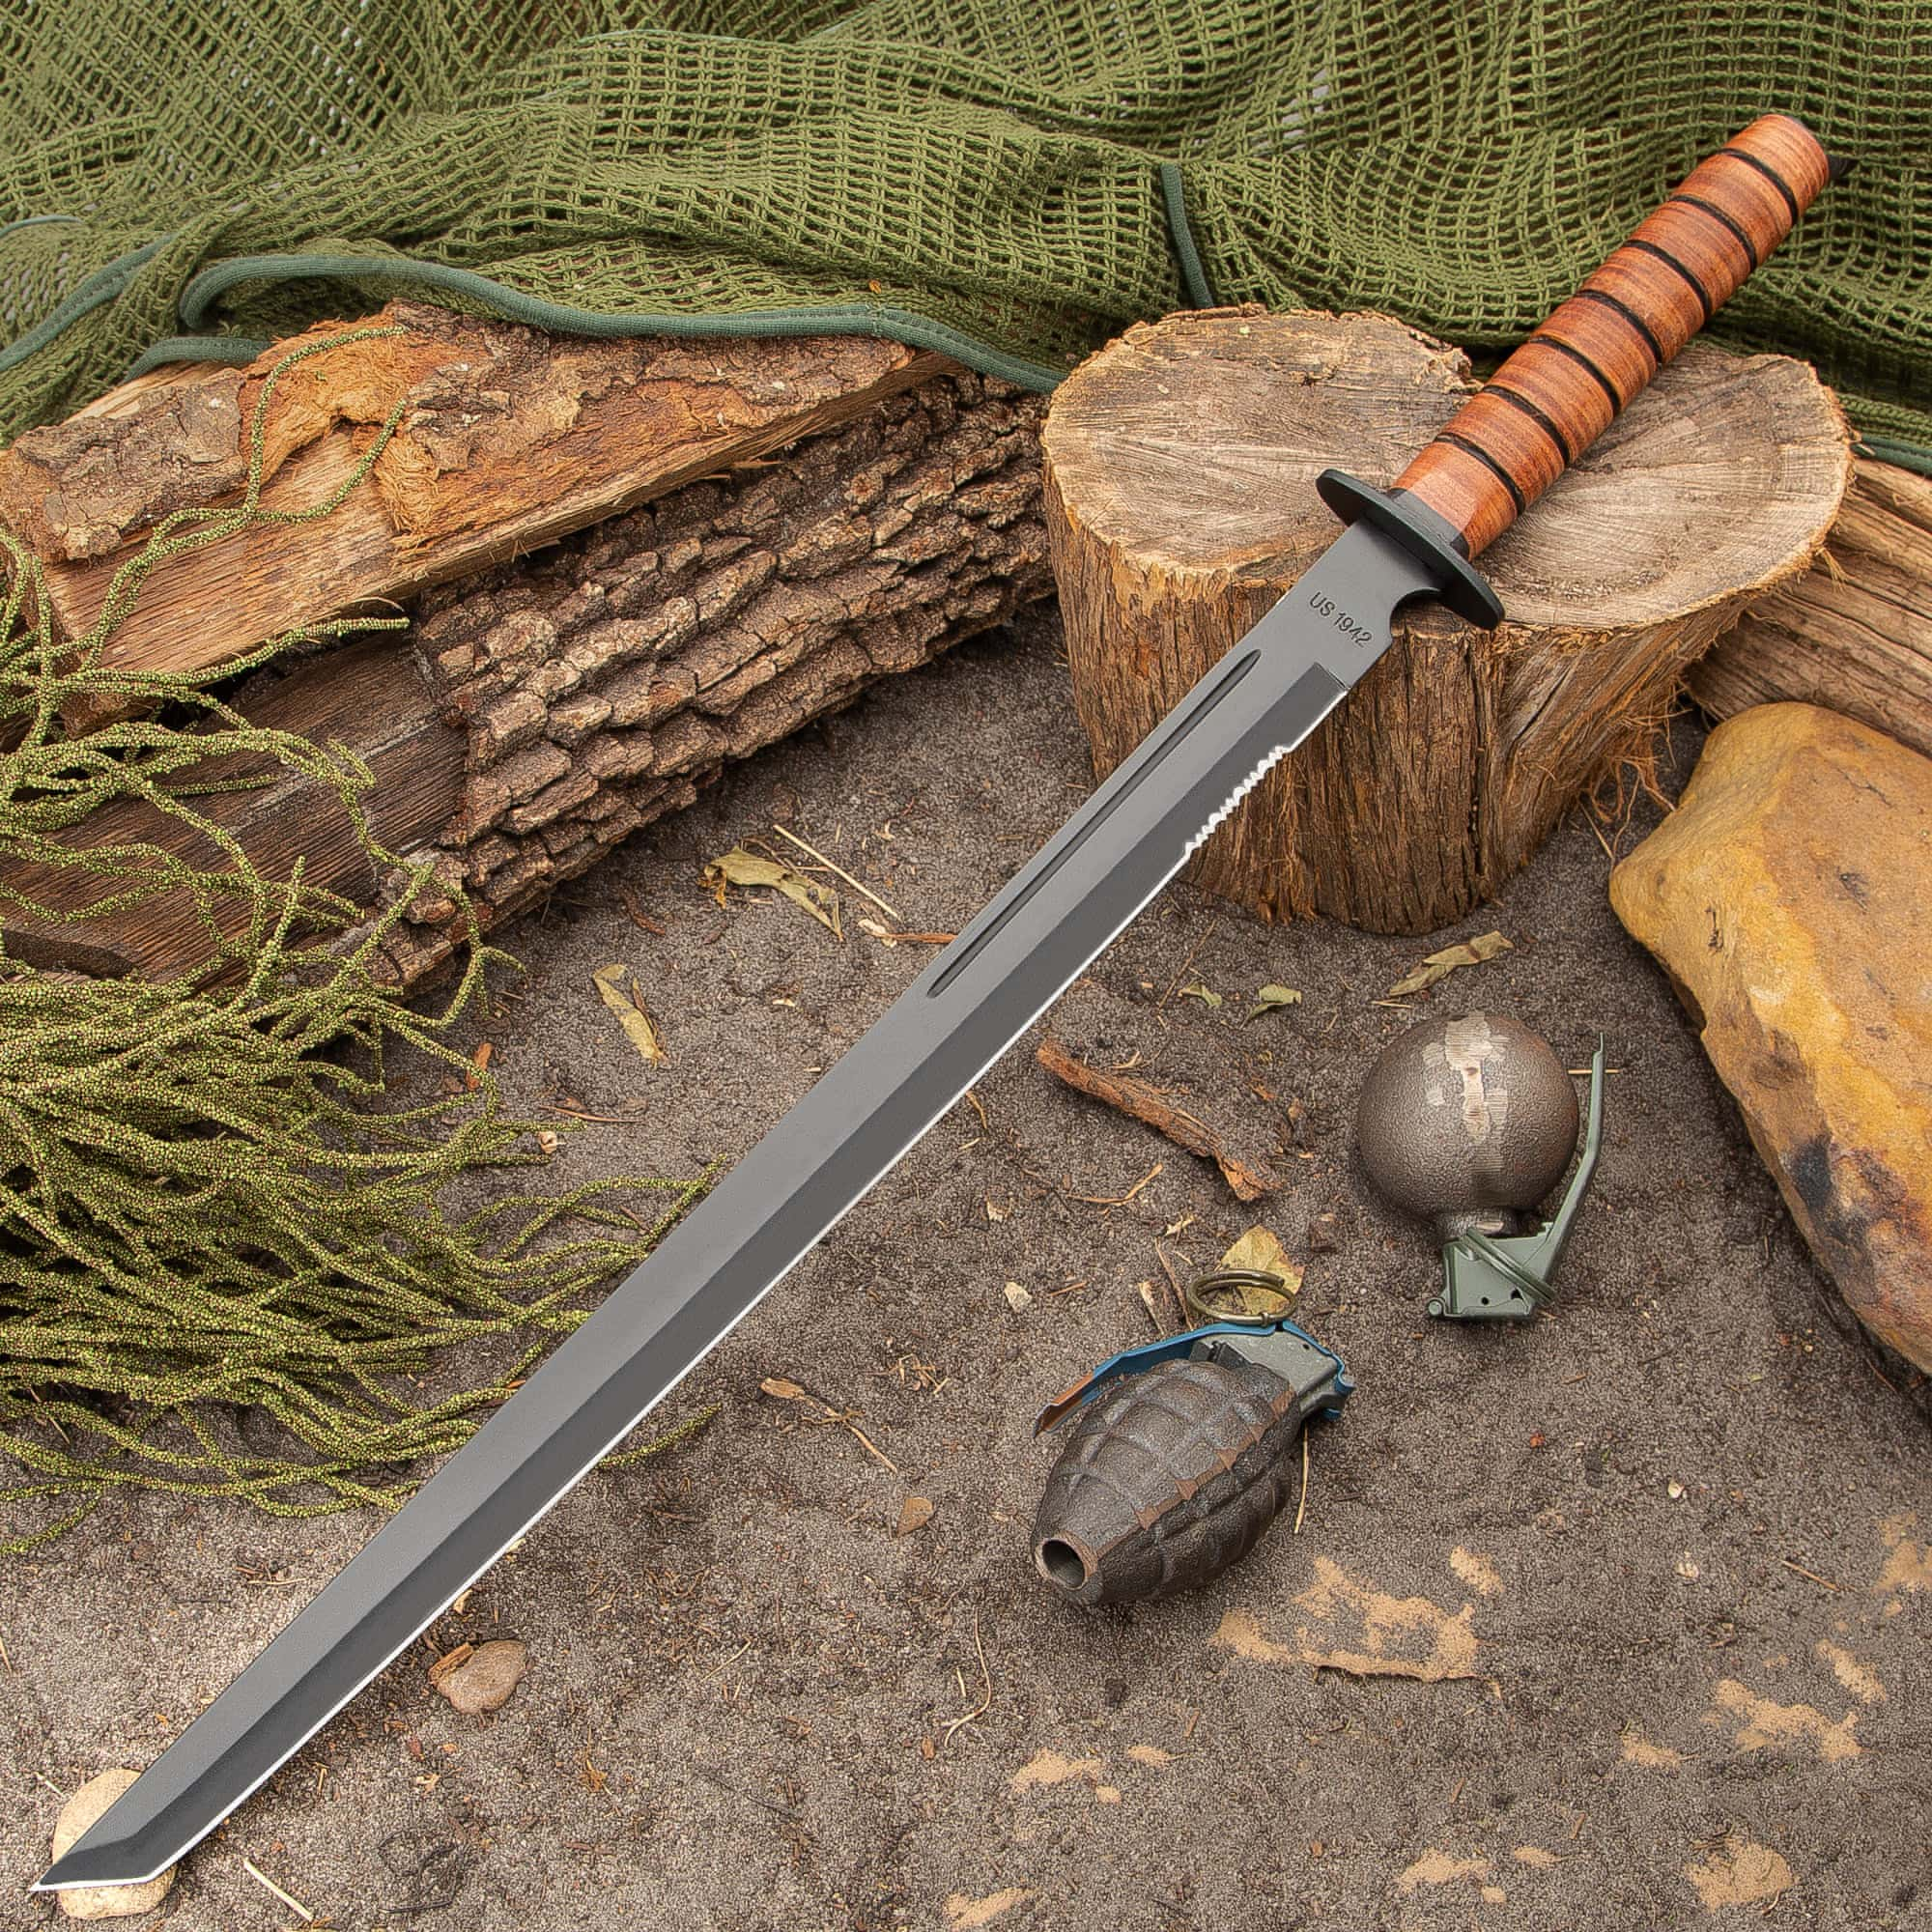 1942 Marine Combat Sword with Sheath | Cutlery USA